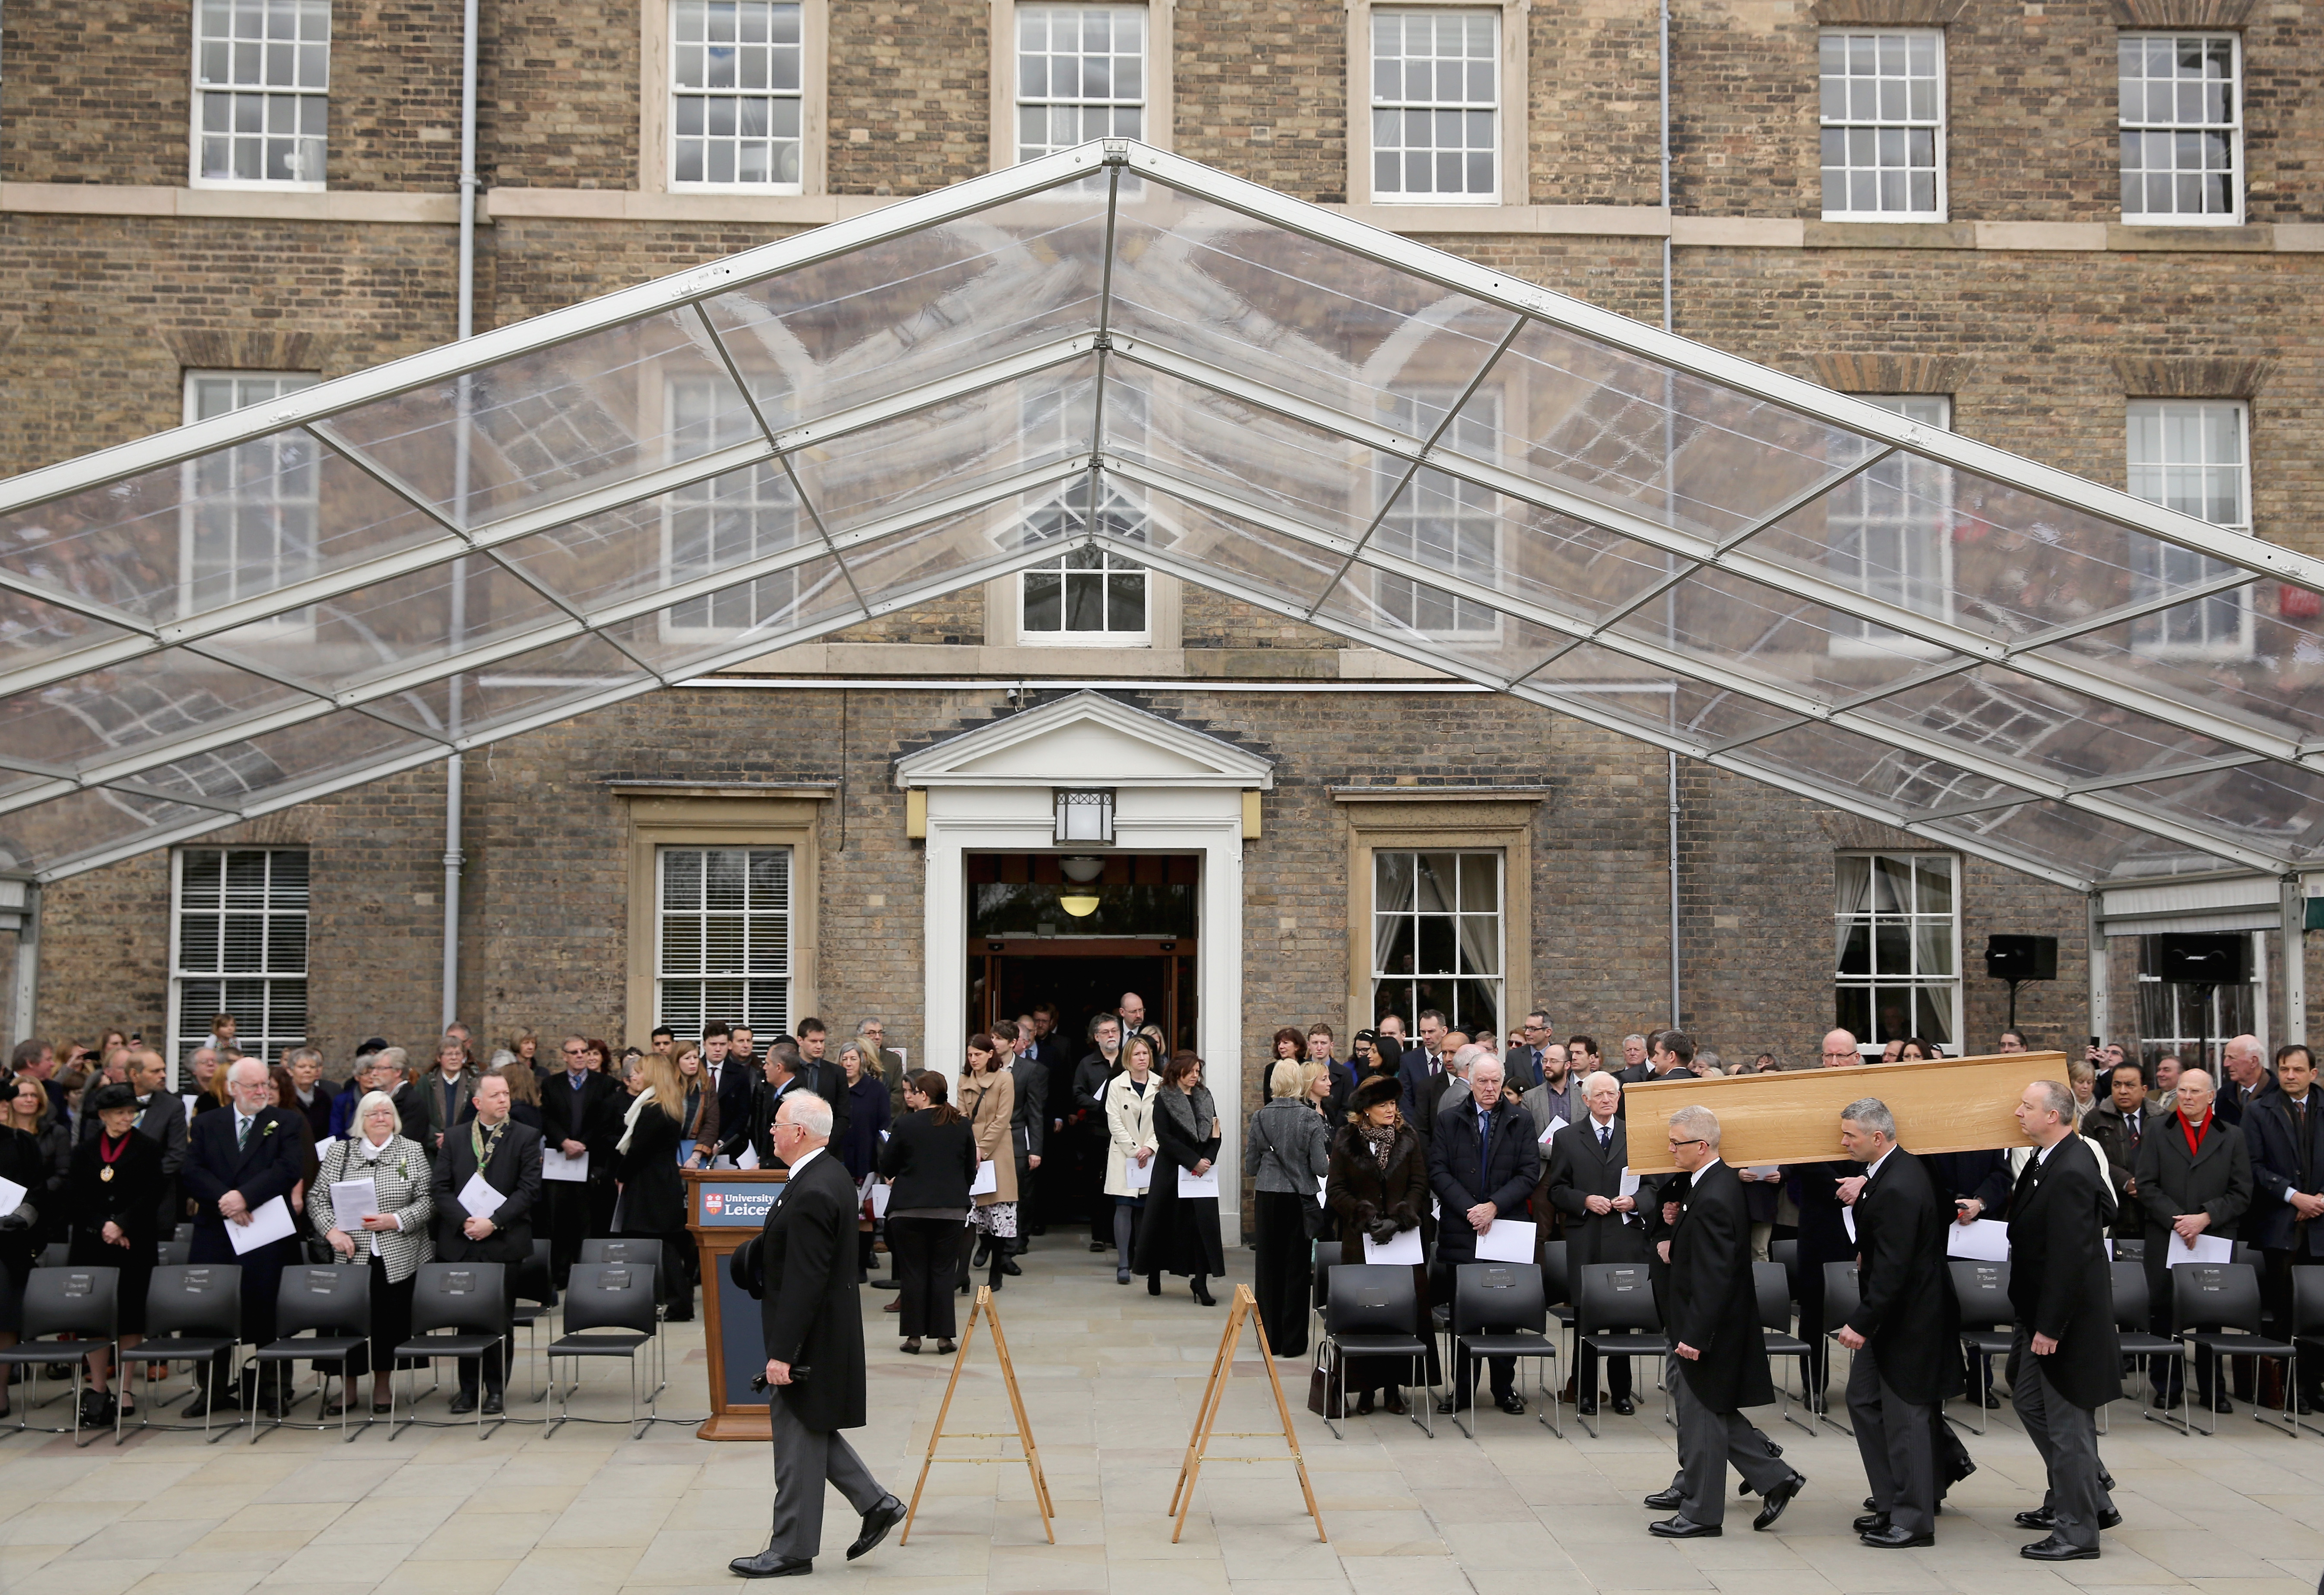 The coffin containing the remains of King Richard III is carried from the Fielding Johnson Building at the University of Leicester as it starts its procession ahead of reinterment at Leicester Cathedral on March 22, 2015 in Leicester, England. The skeleton of King Richard III was discovered in 2012 in the foundations of Greyfriars Church, Leicester, 500 years after he was killed in the Battle of Bosworth Field. (Photo by Christopher Furlong/Getty Images)